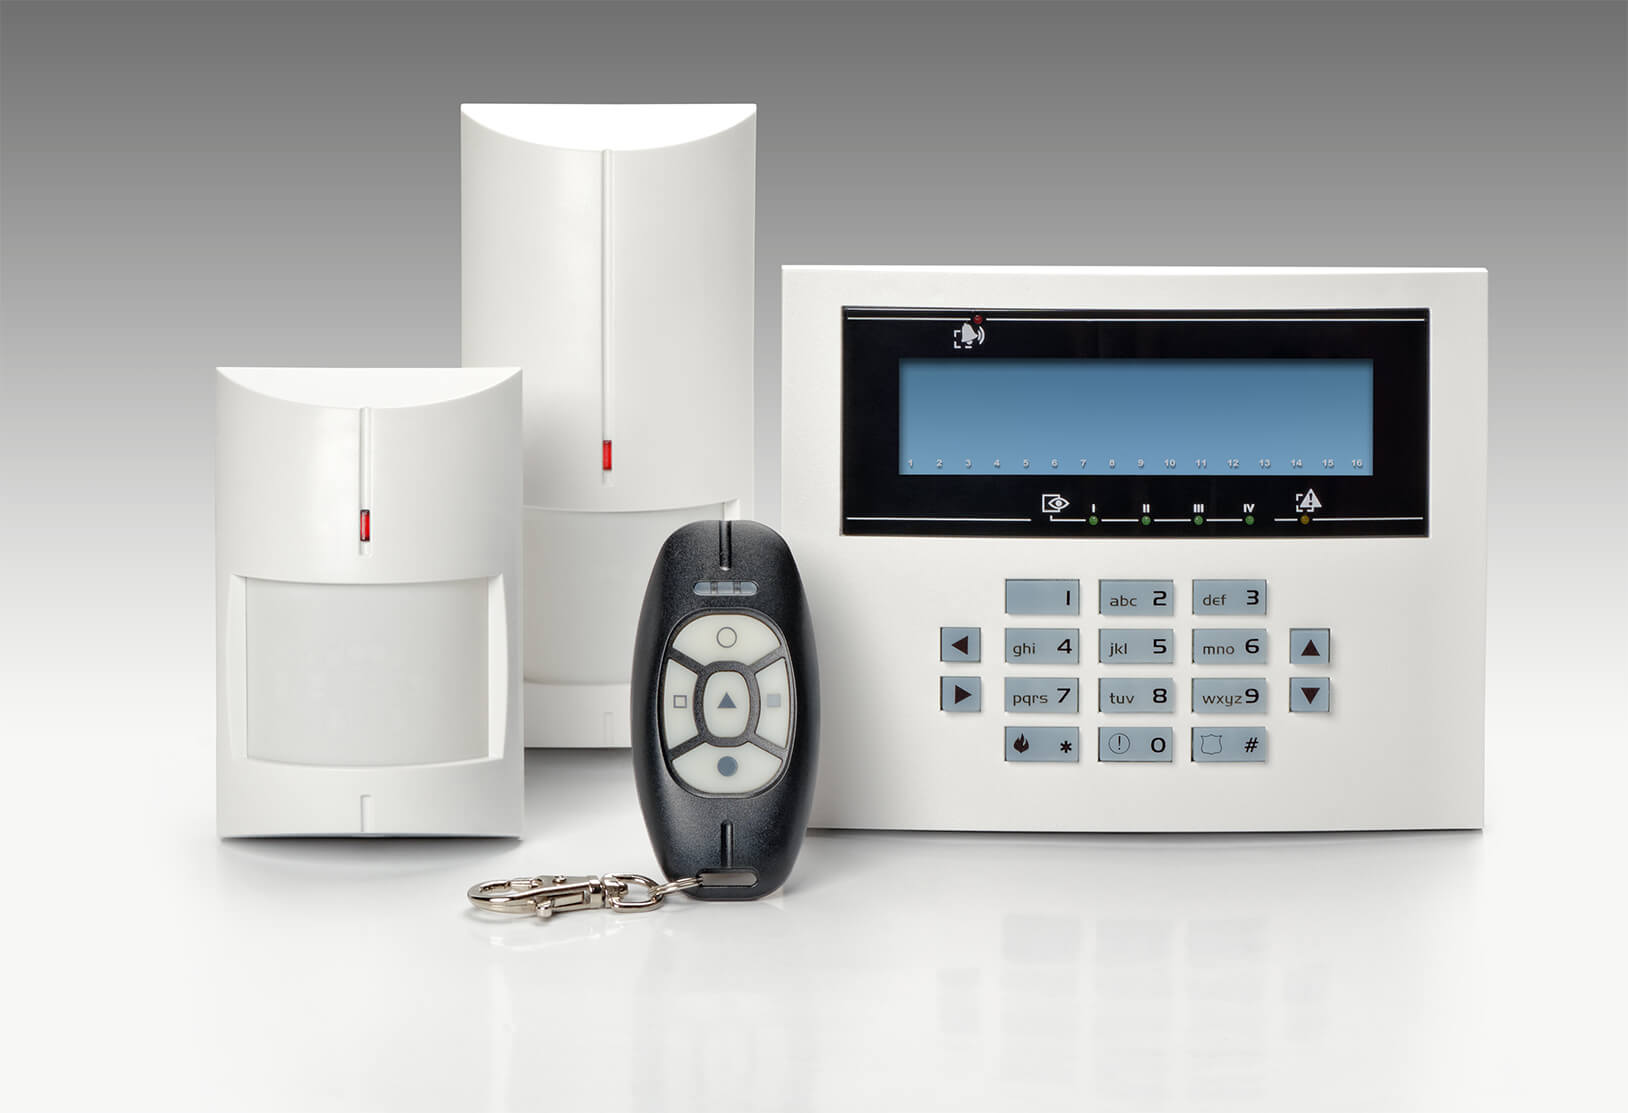 Burglar Alarms Repair in City of London EC4 - Local City of London EC4 alarm engineers.Call 02078872244 - See cost/price for burglar alarm repair and book your alarm engineer. No Hidden charges,No Contracts, Book as you need.Engineers on demand.All alarm makes repaired.Same day service ability.